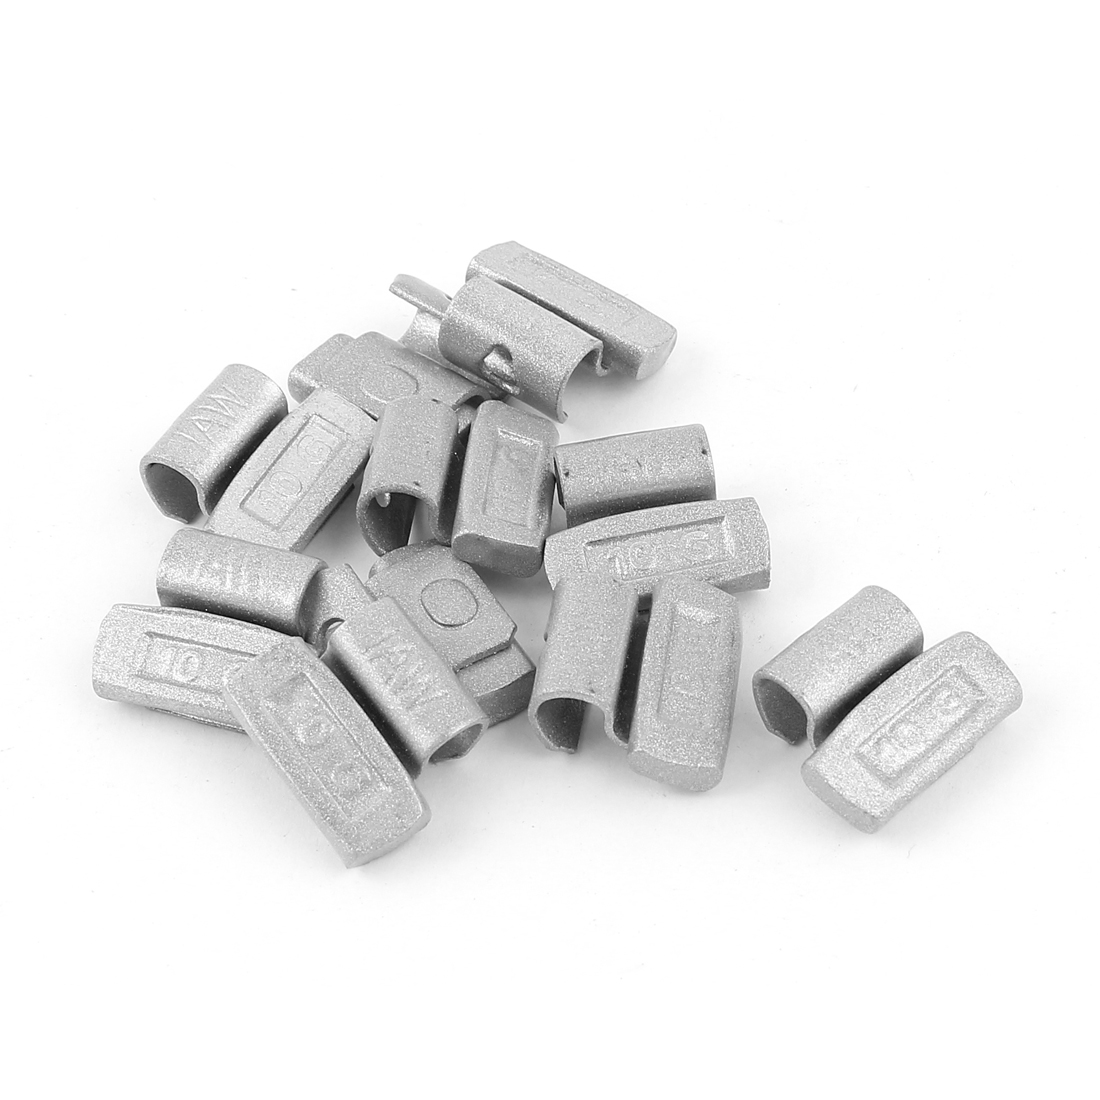 10 Pcs 10g Clip Tyre Wheel Balance Weights for Car Alloy Rim